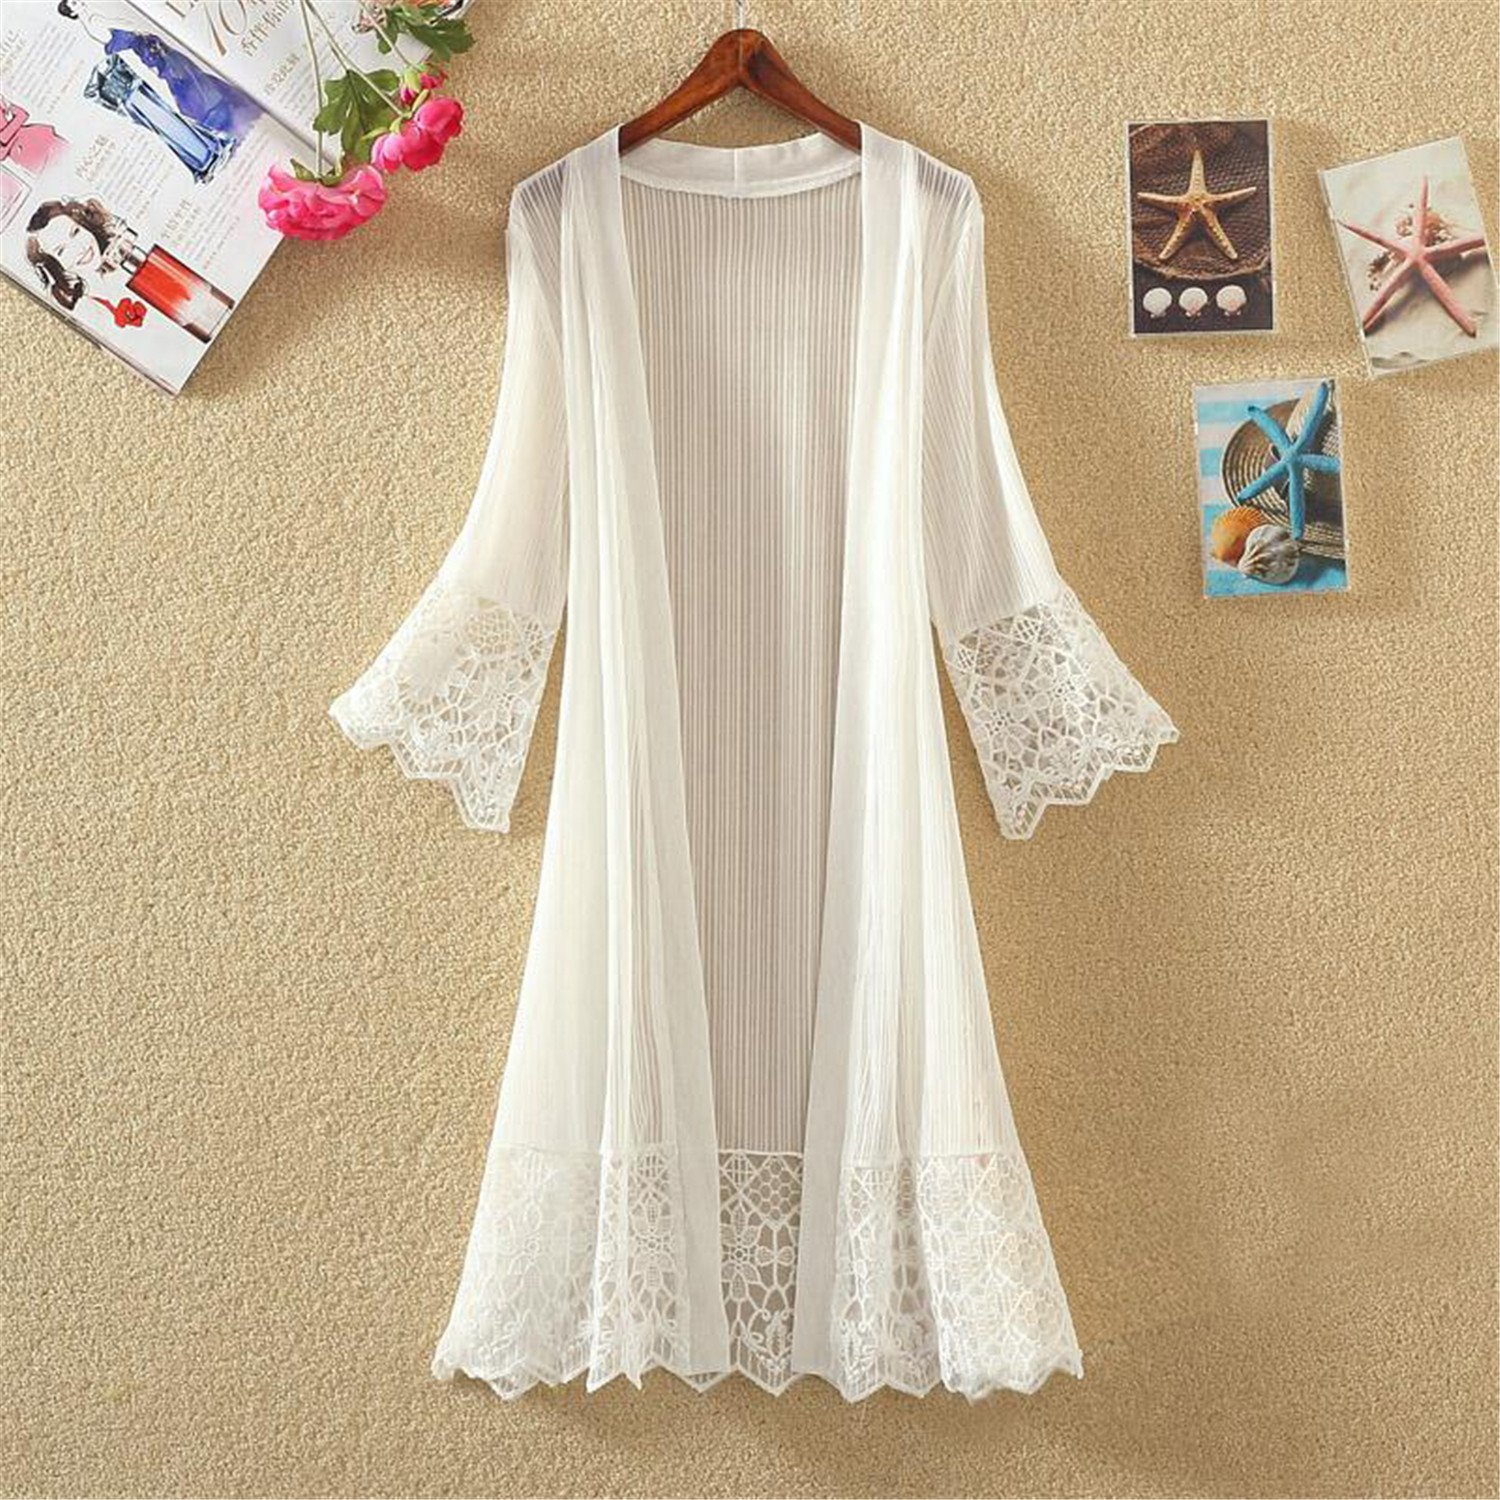 Jiushiaini Lace Jacket New Spring Summer White Black Perspective Loose Thin Outwear Fashion Sleeves Casual Coat Plus Size at Amazon Womens Clothing store: